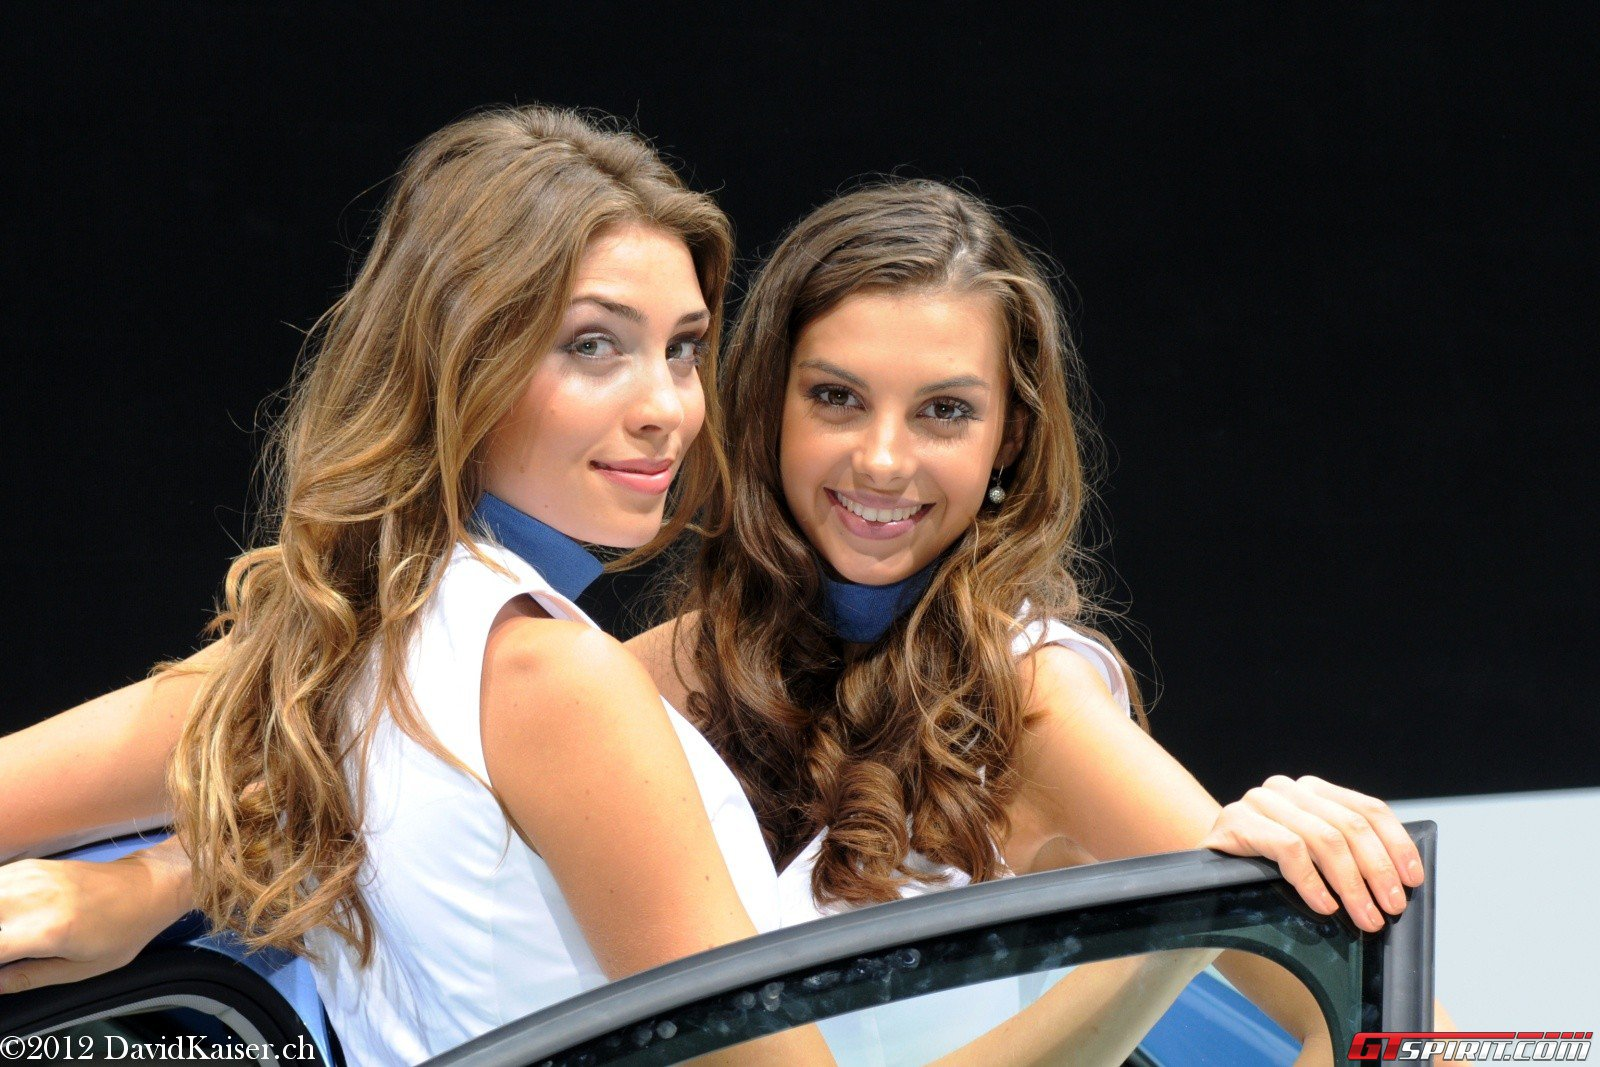 Paris Motor Show 2012 Girls by David Kaiser Photography - Part 2 Photo 18